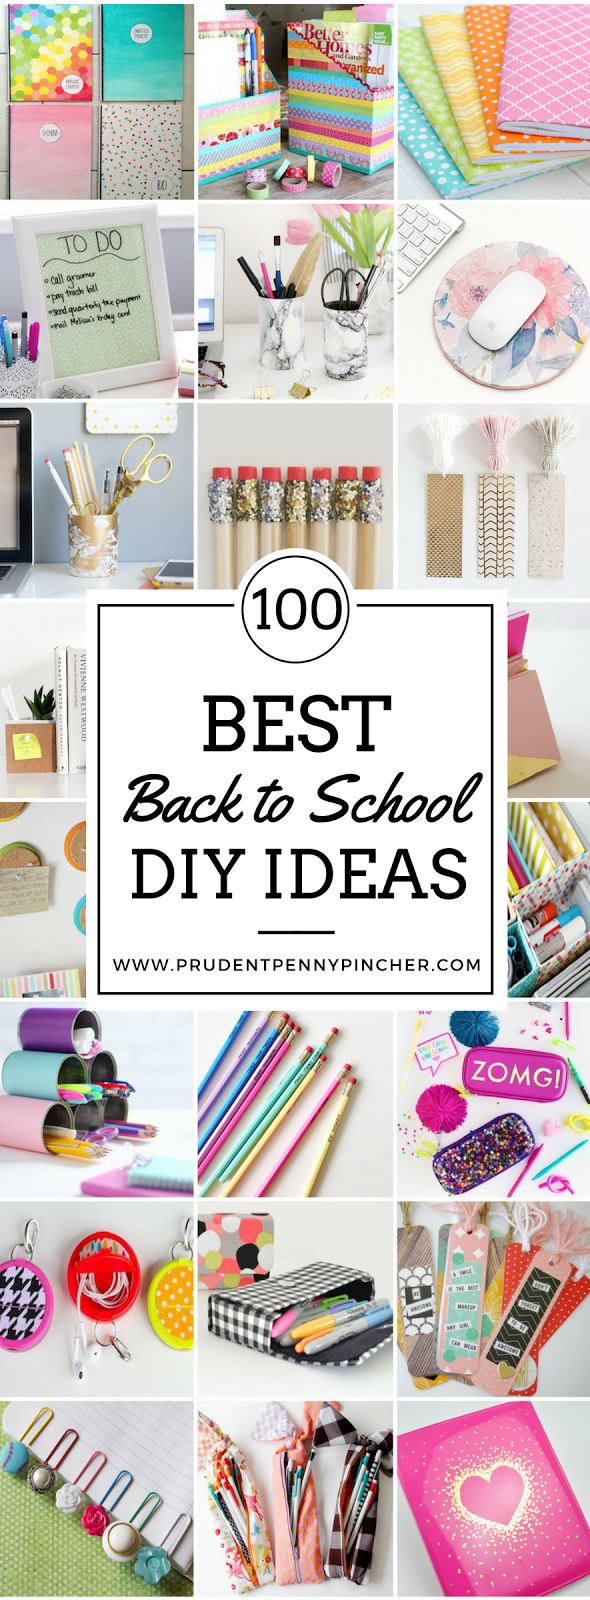 http://www.prudentpennypincher.com/100-back-to-school-diy-ideas/